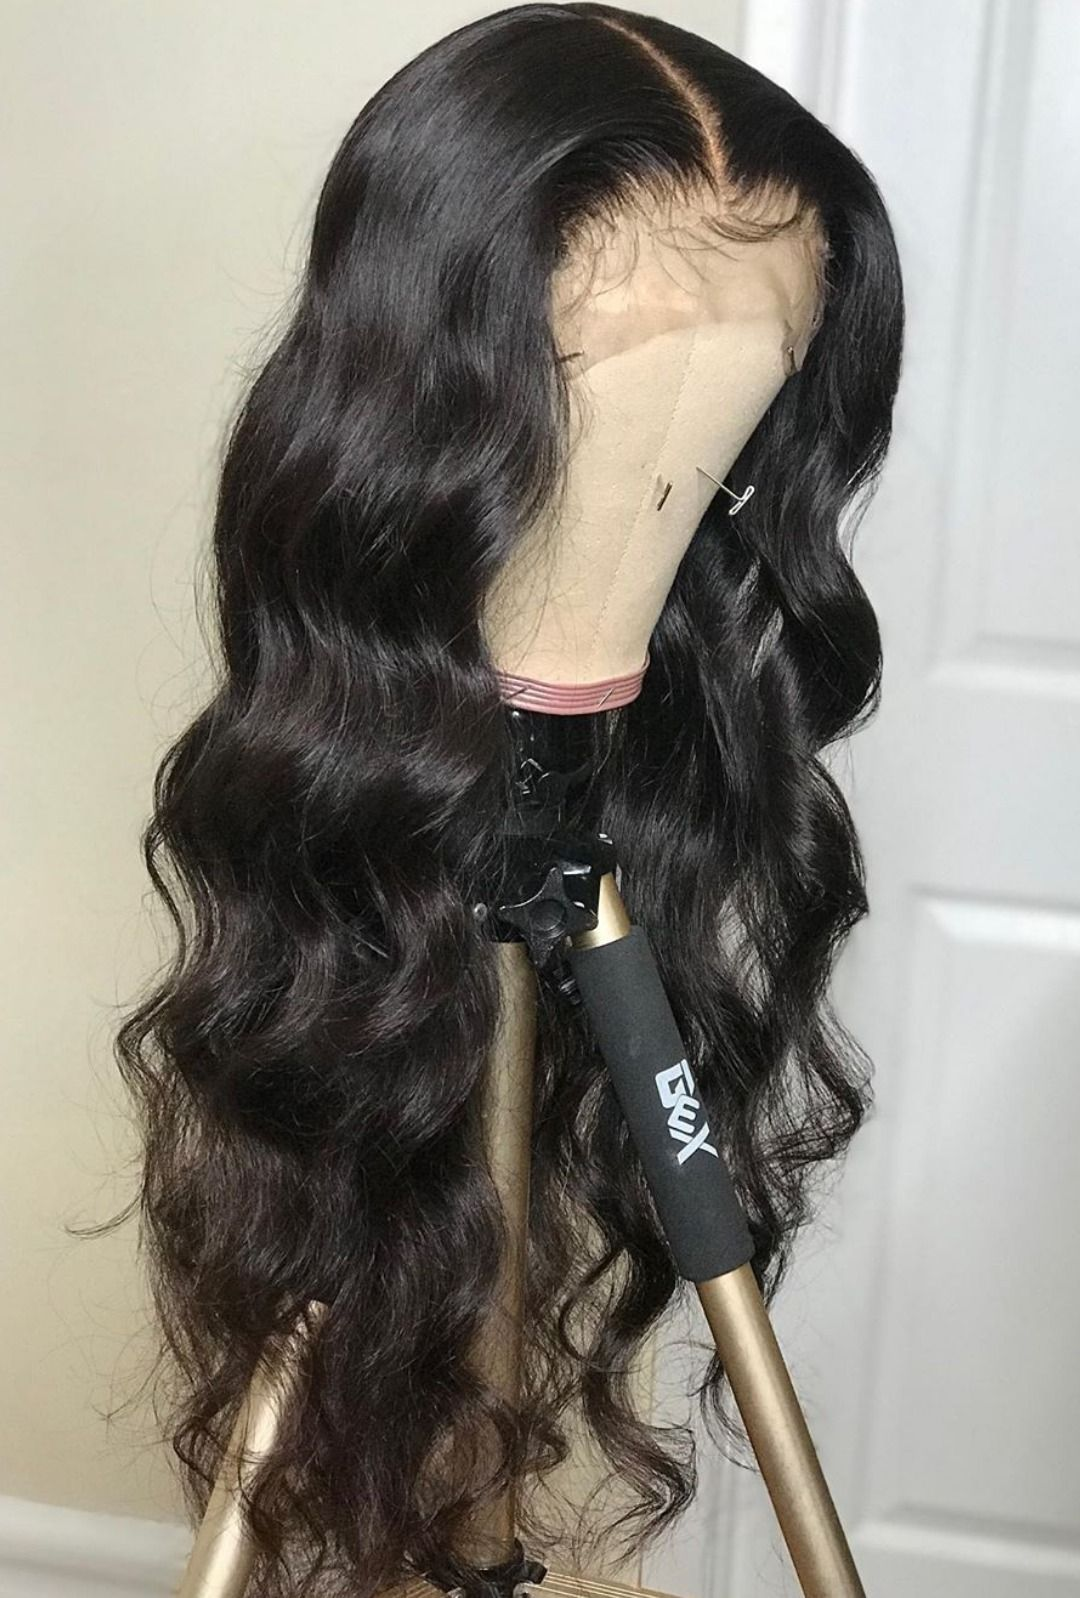 Lace Front Wigs Black Curly Hair Non Remy Blonde Brazilian Hair Bundles With Closure Burgundy Wig